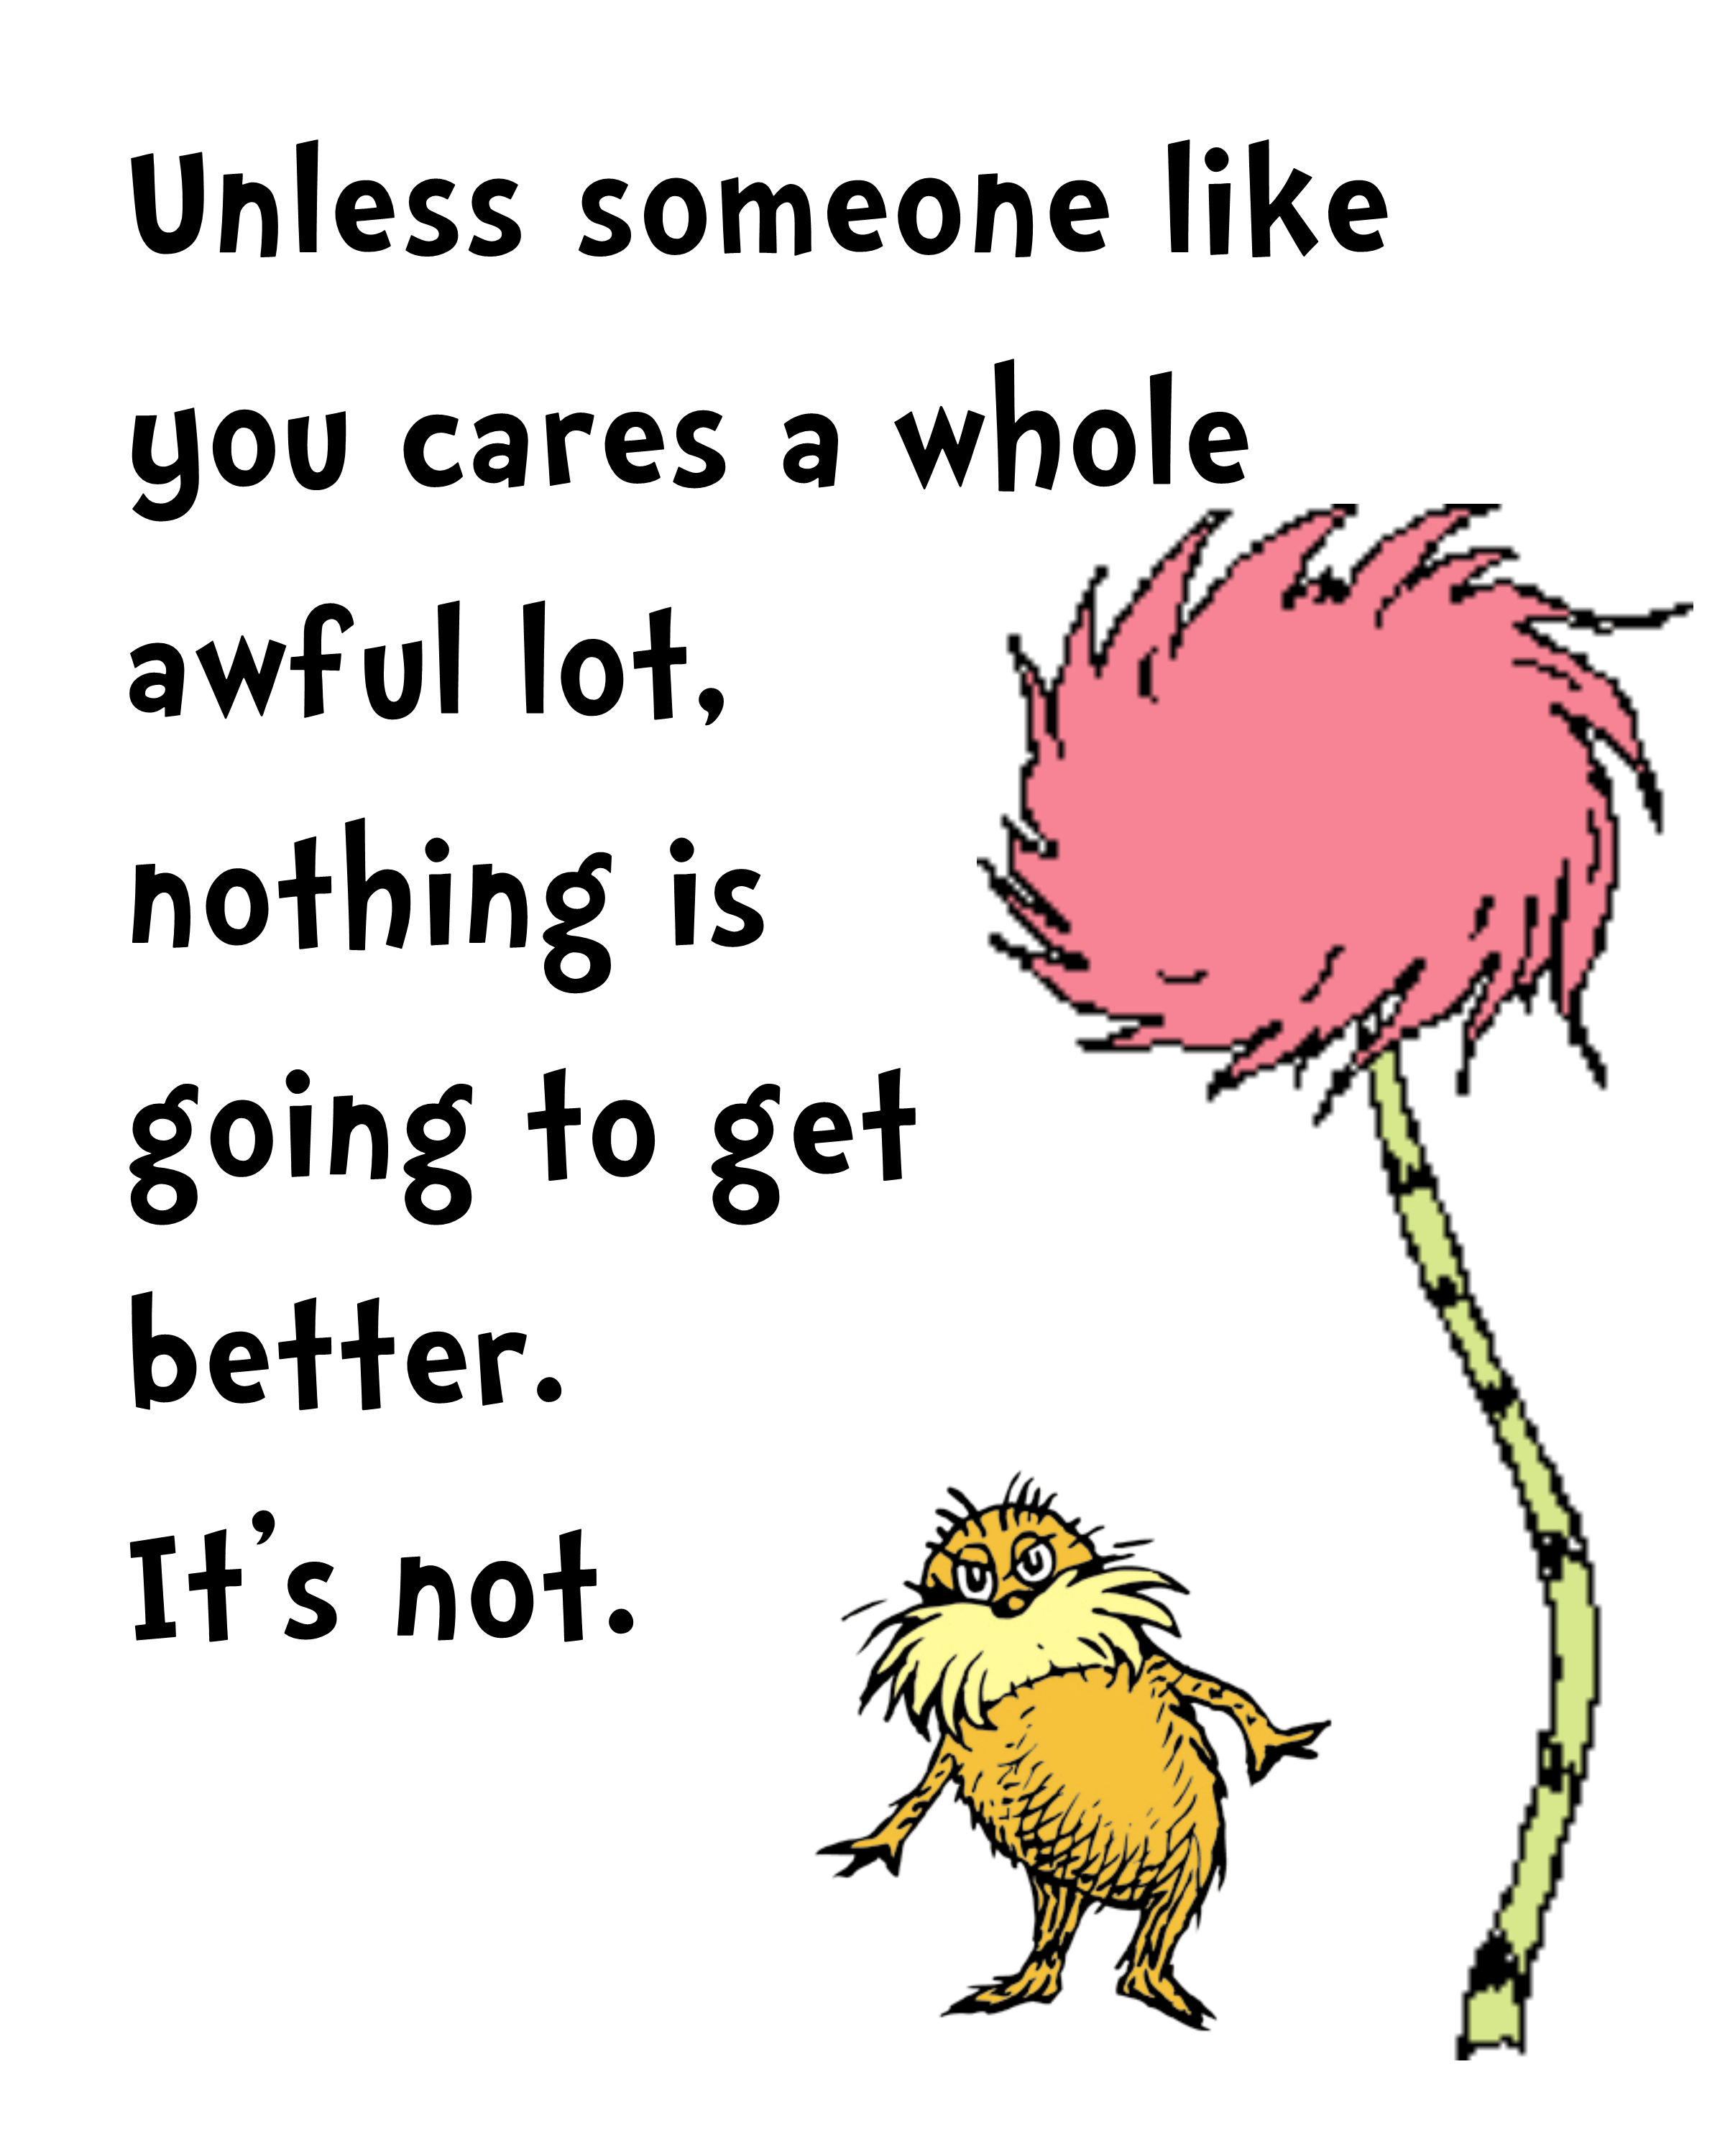 The Lorax Png 2400 3000 Lorax Quotes Seuss Quotes Dr Seuss Quotes